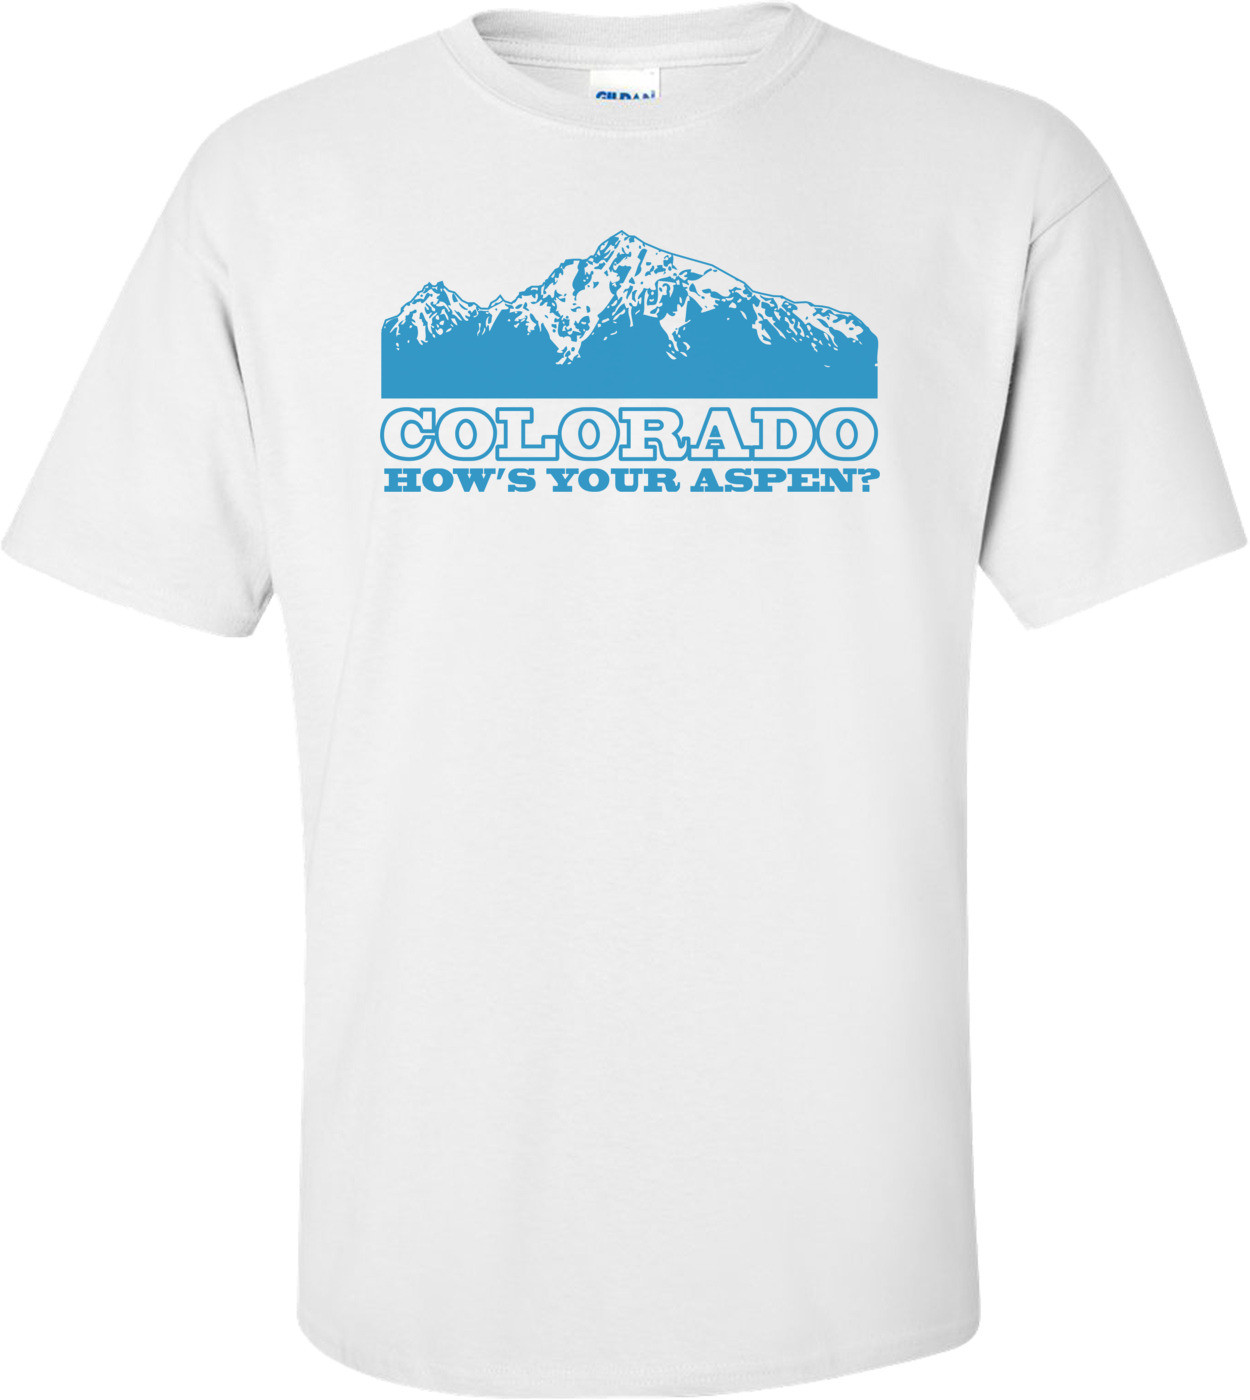 Colorado How's Your Aspen T-shirt